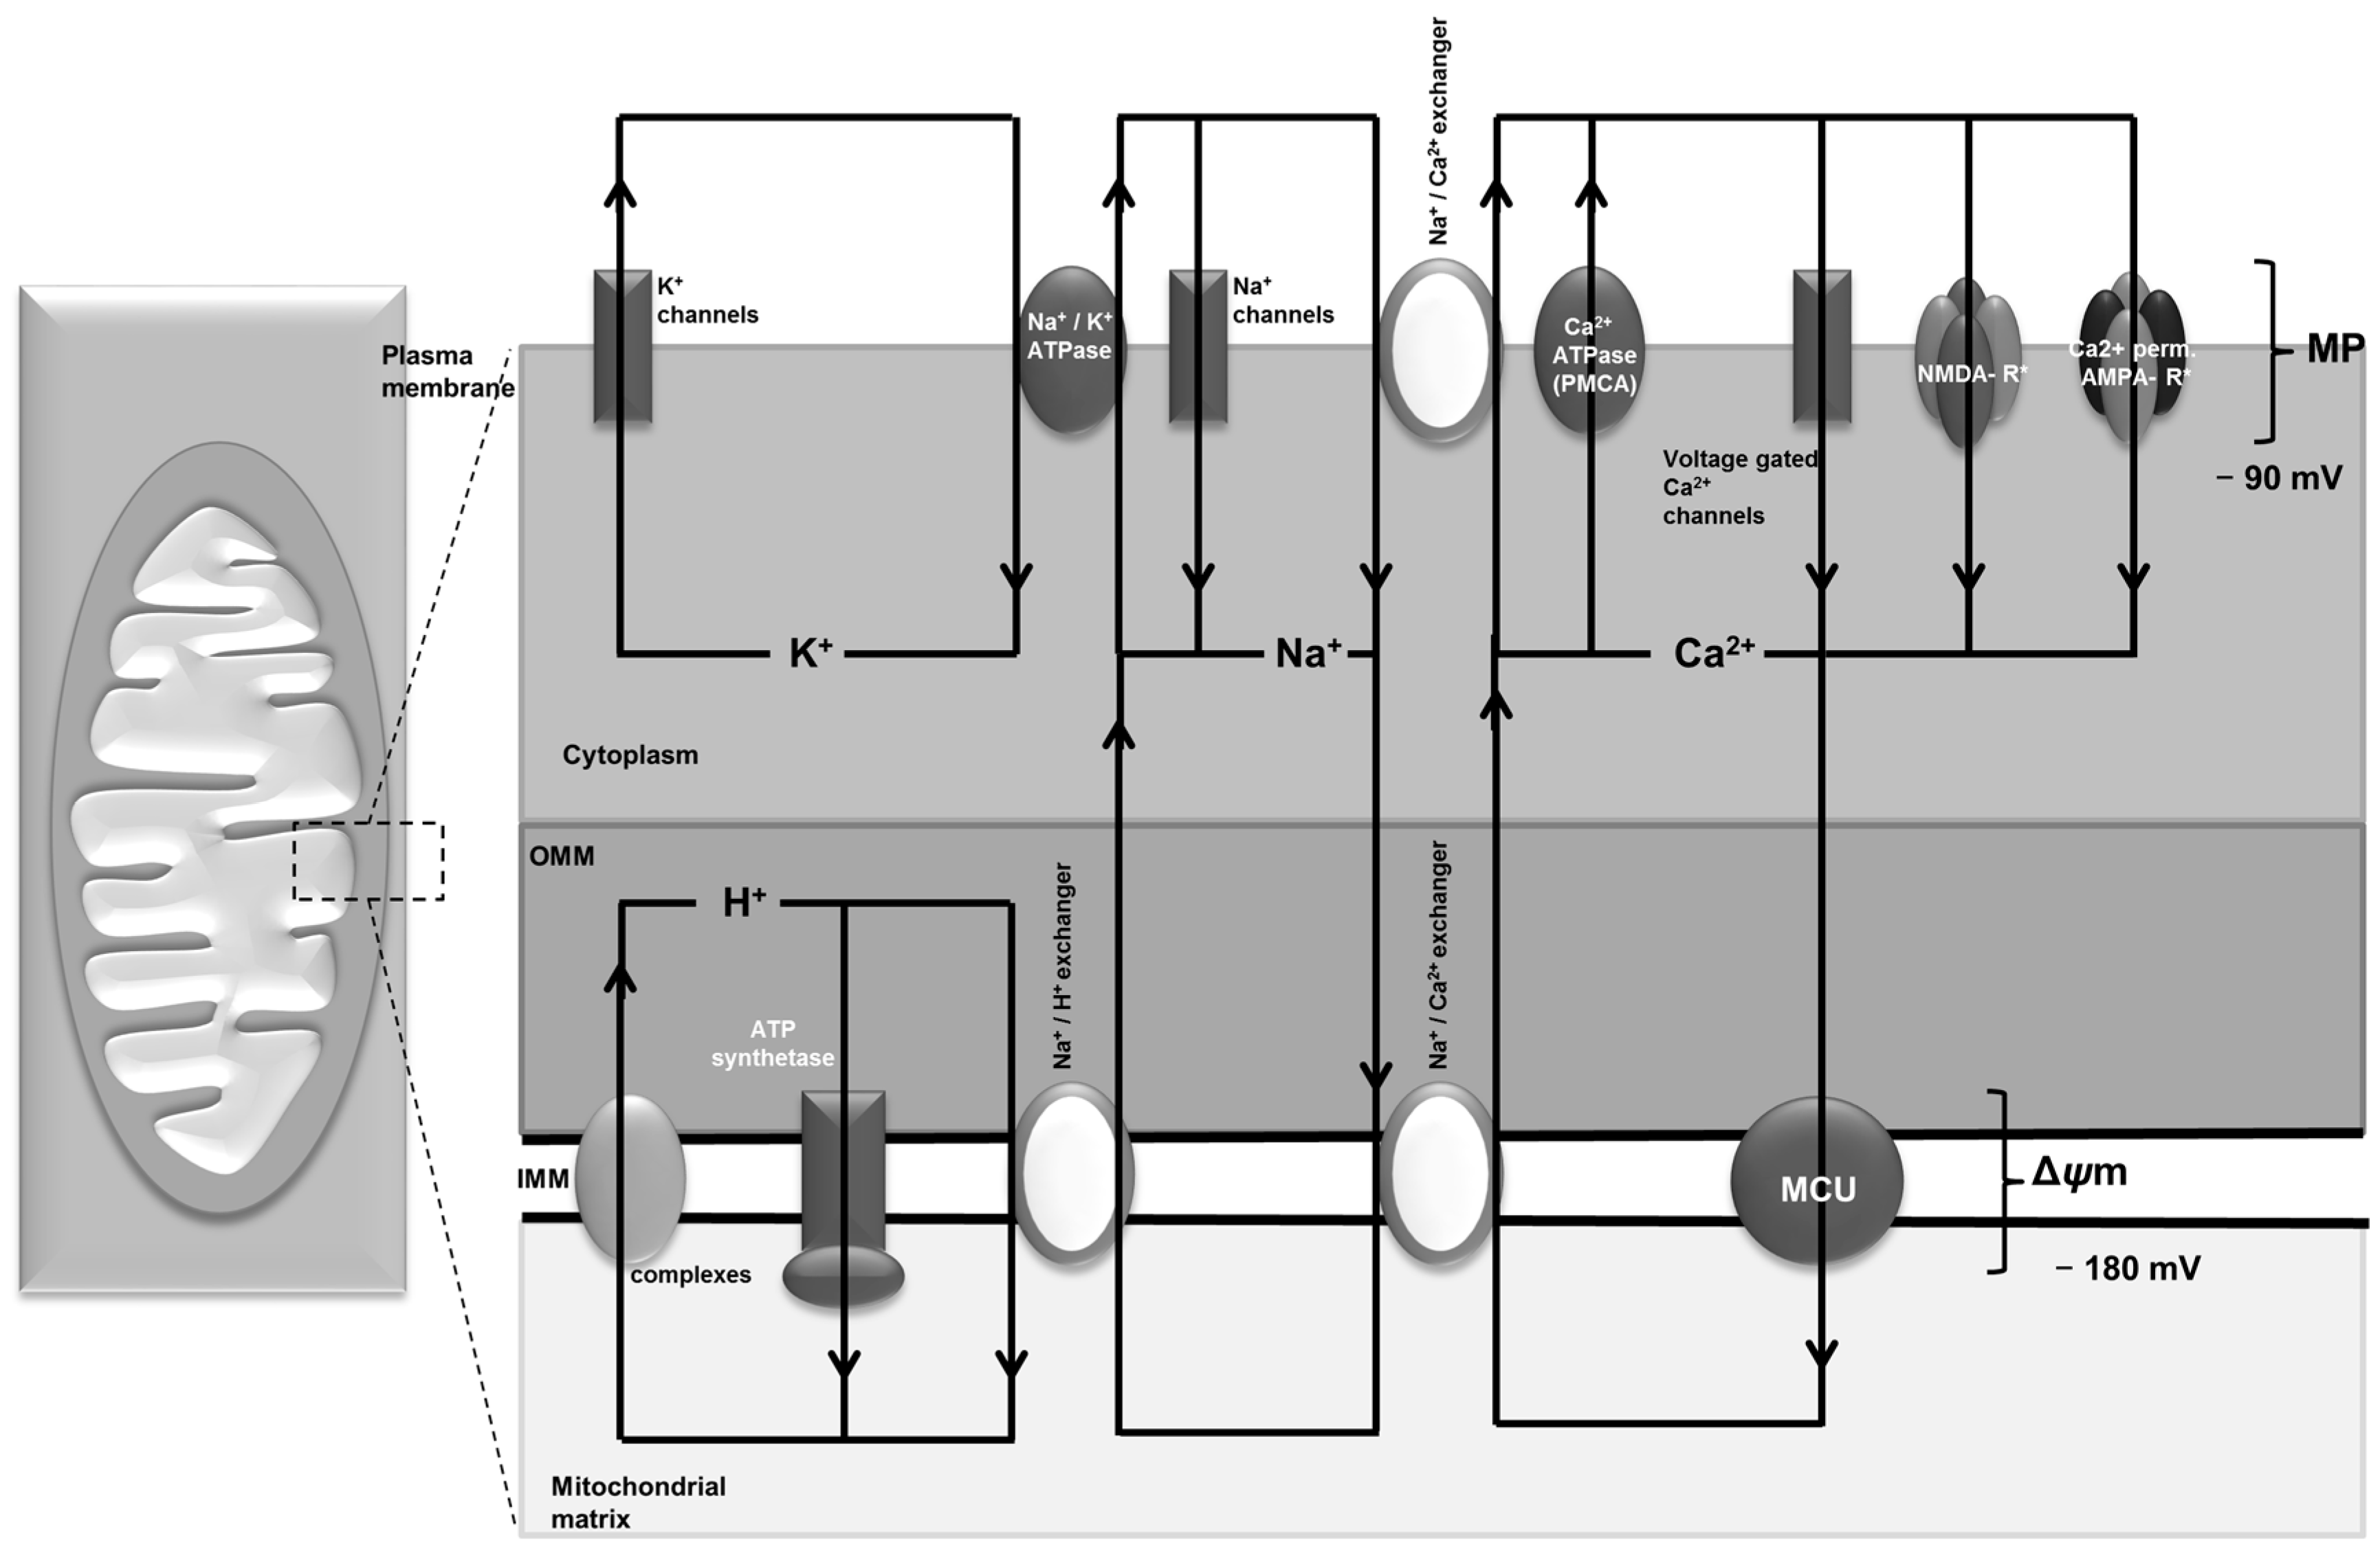 Ijms Free Full Text Metabolic And Homeostatic Changes In Something Either The Schematic Of Driver Circuit Or With No